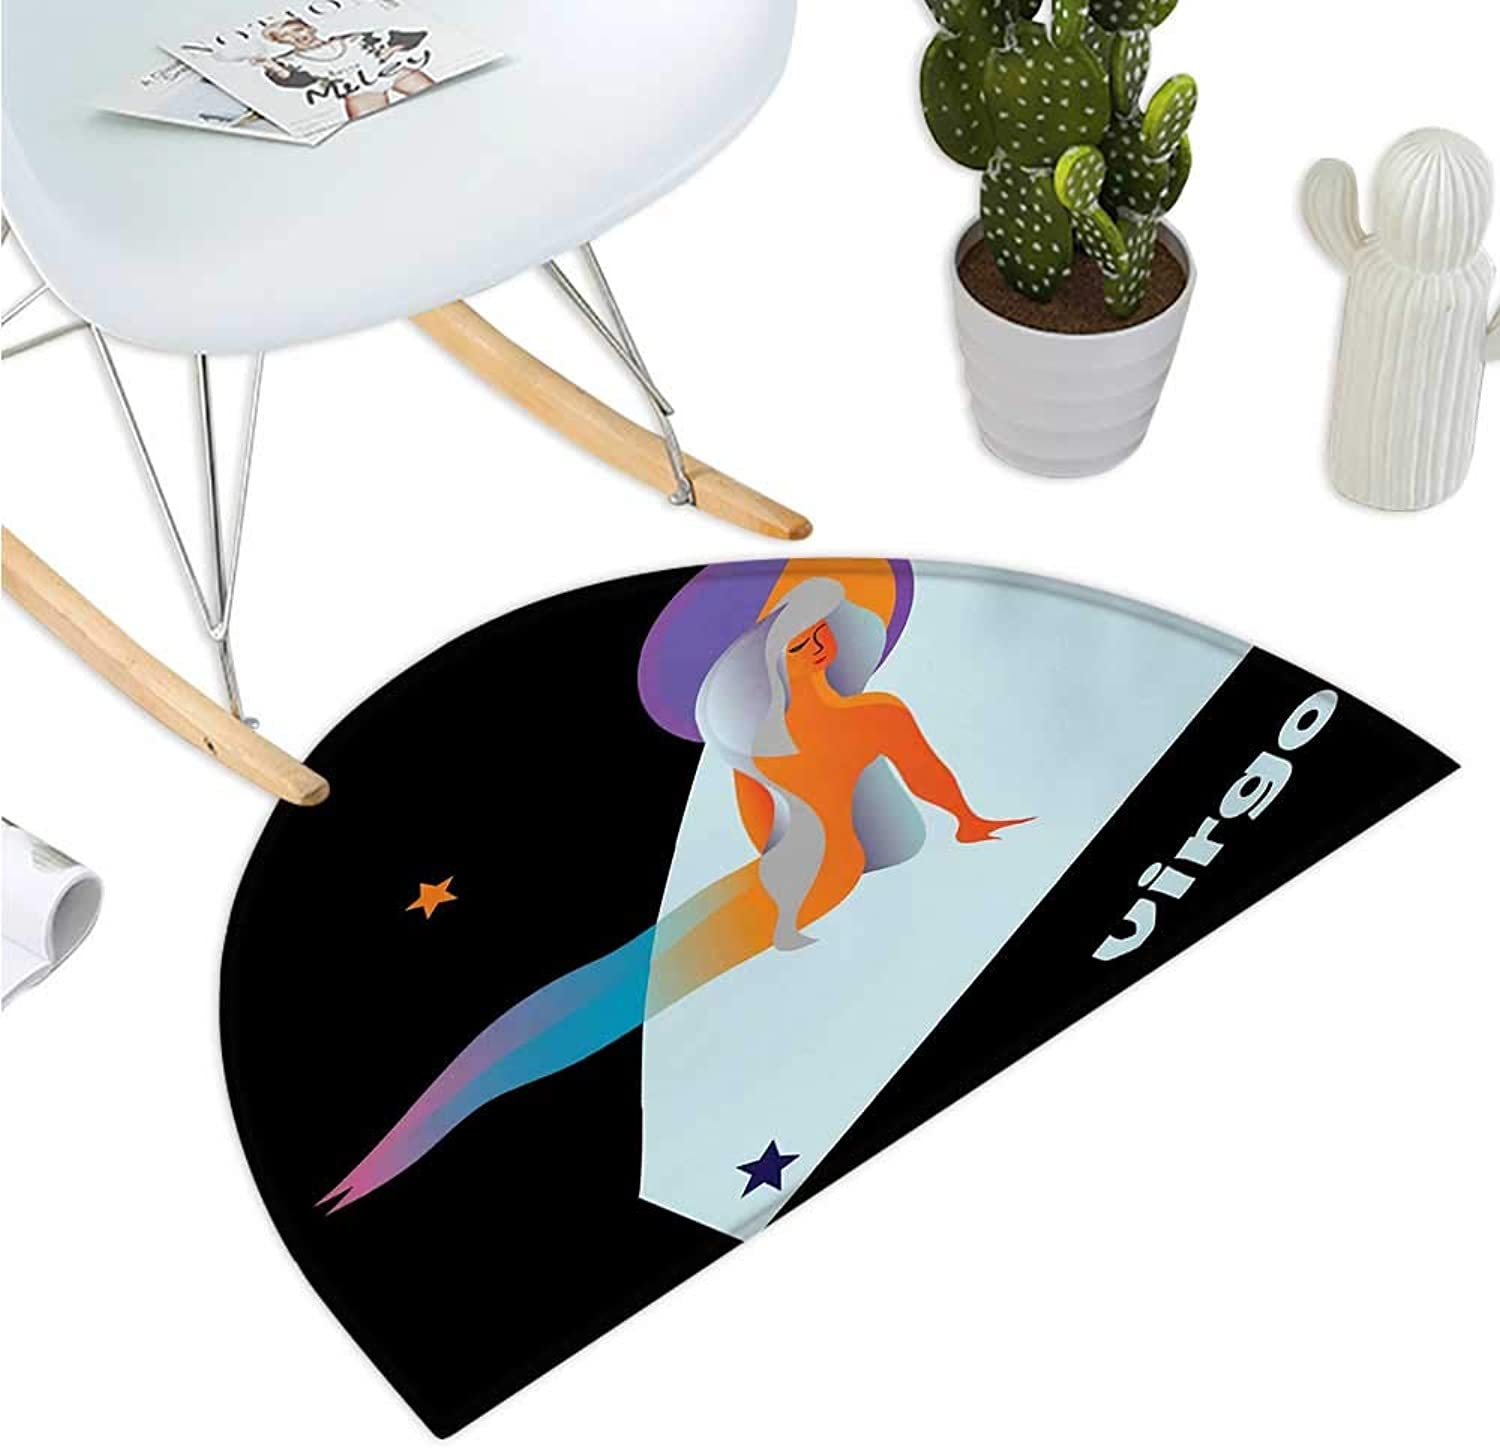 Zodiac Virgo Half Round Door mats Stars and Symbols Theme Abstract Artistic Woman Figure Day and Night Concept Entry Door Mat H 47.2  xD 70.8  Multicolor